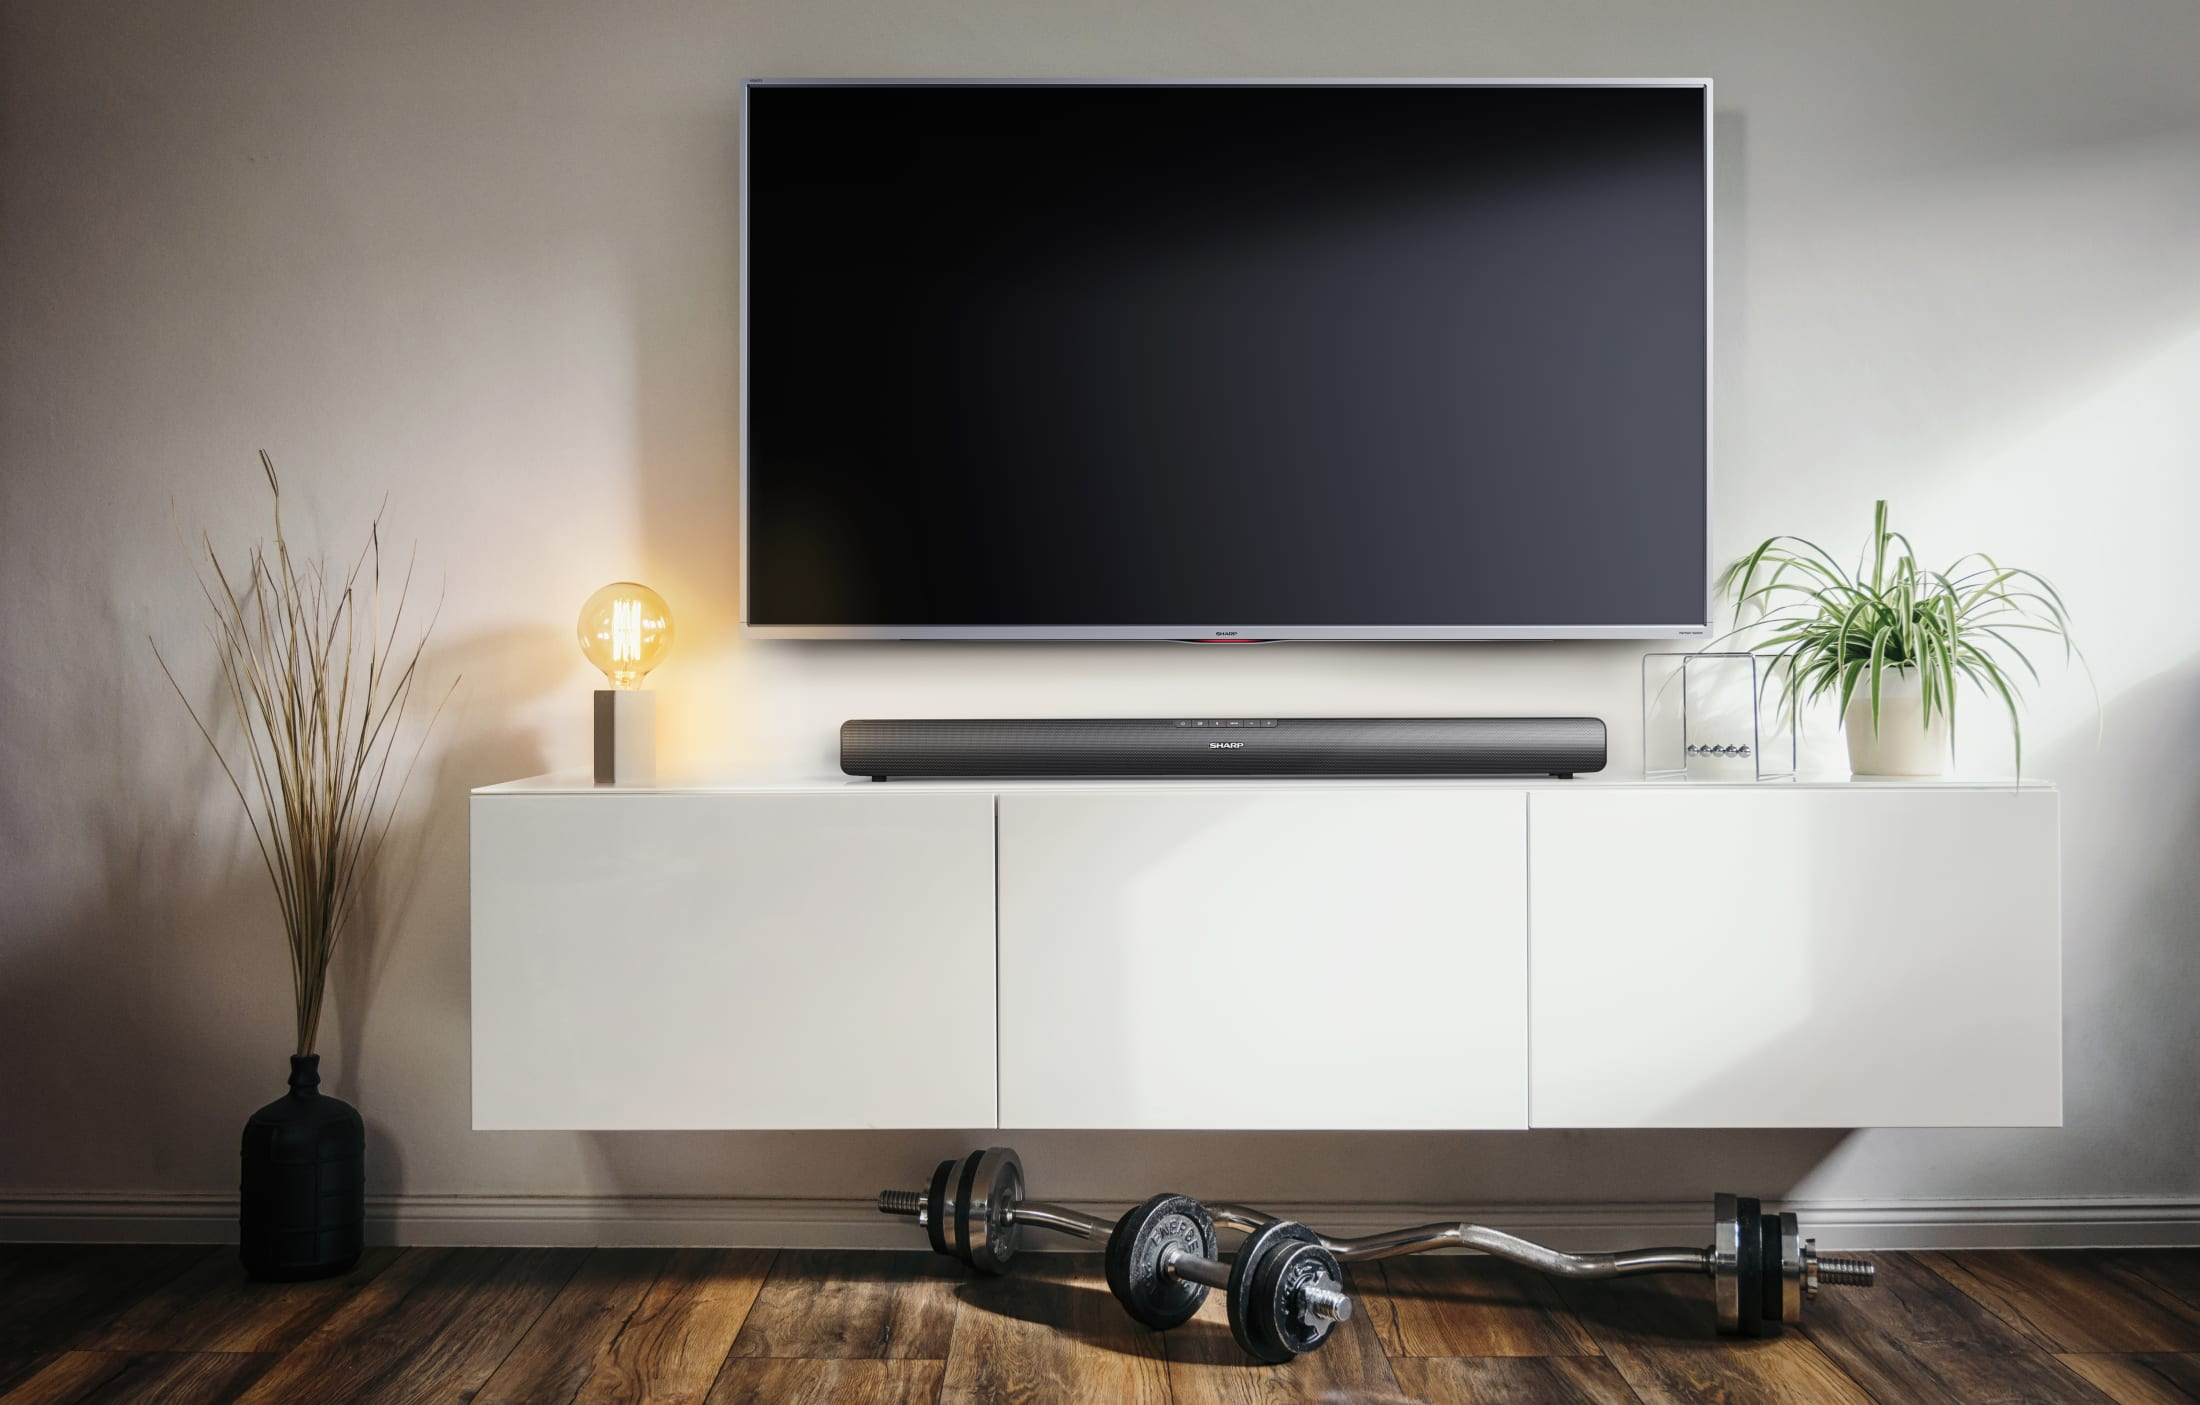 2.0 Slim Soundbar with 40 W and Bluetooth wireless music streaming. Suitable for 37 inch TV and above.